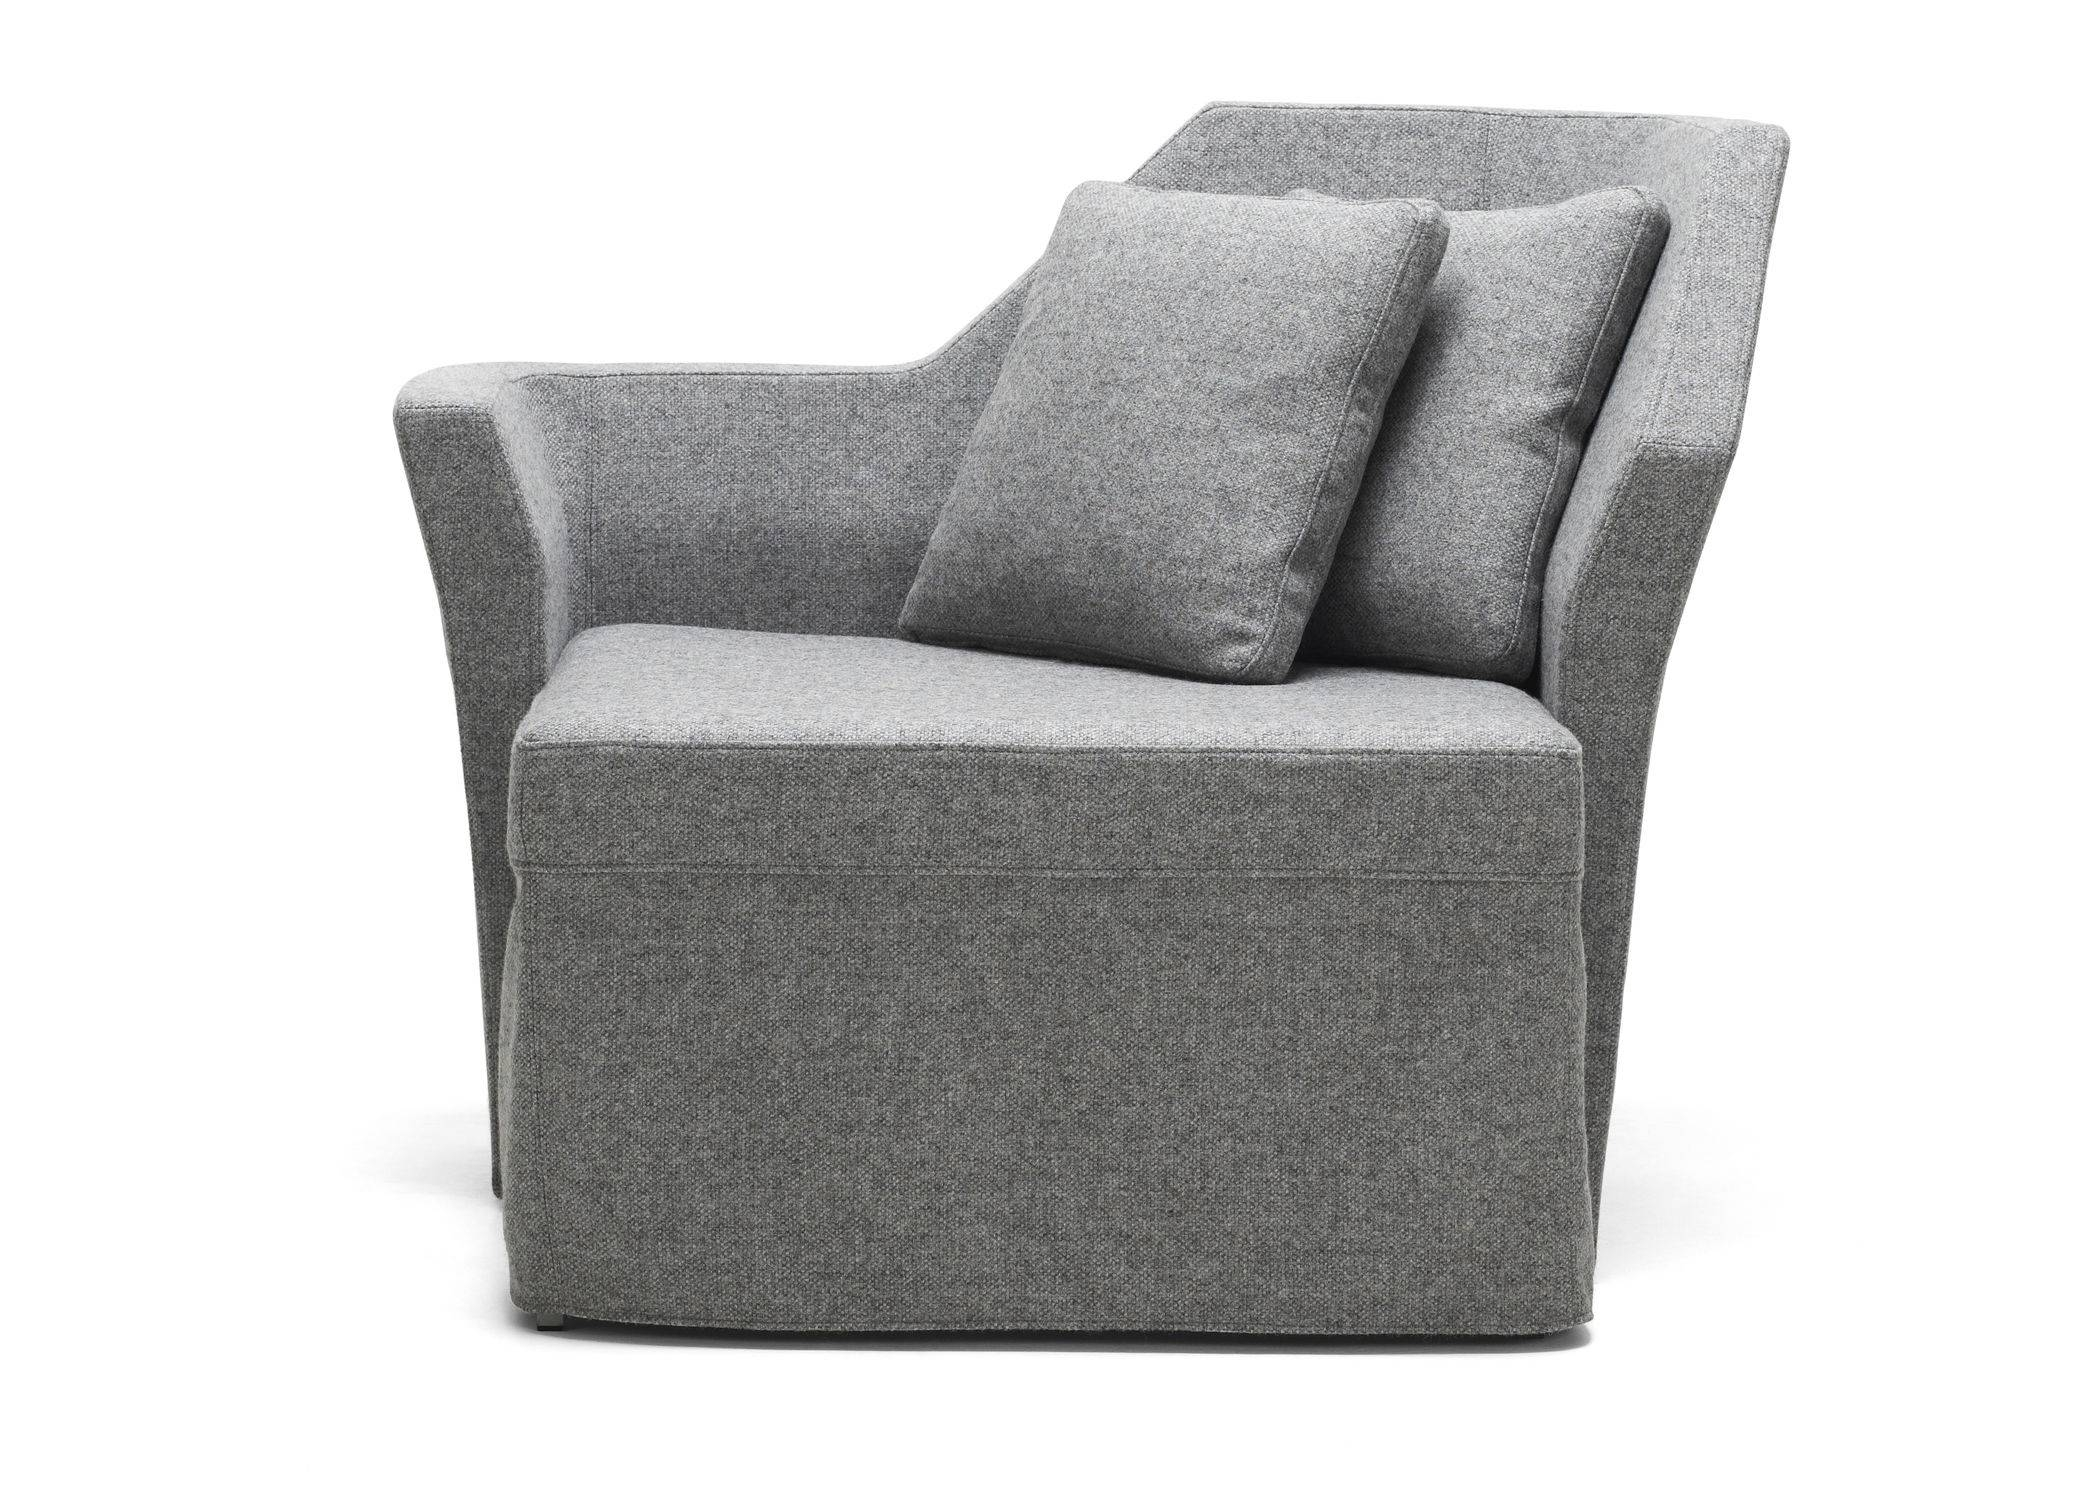 Contemporary Armchair / Textile / Bed - Collarjesper Ståhl regarding Compact Armchairs (Image 16 of 30)